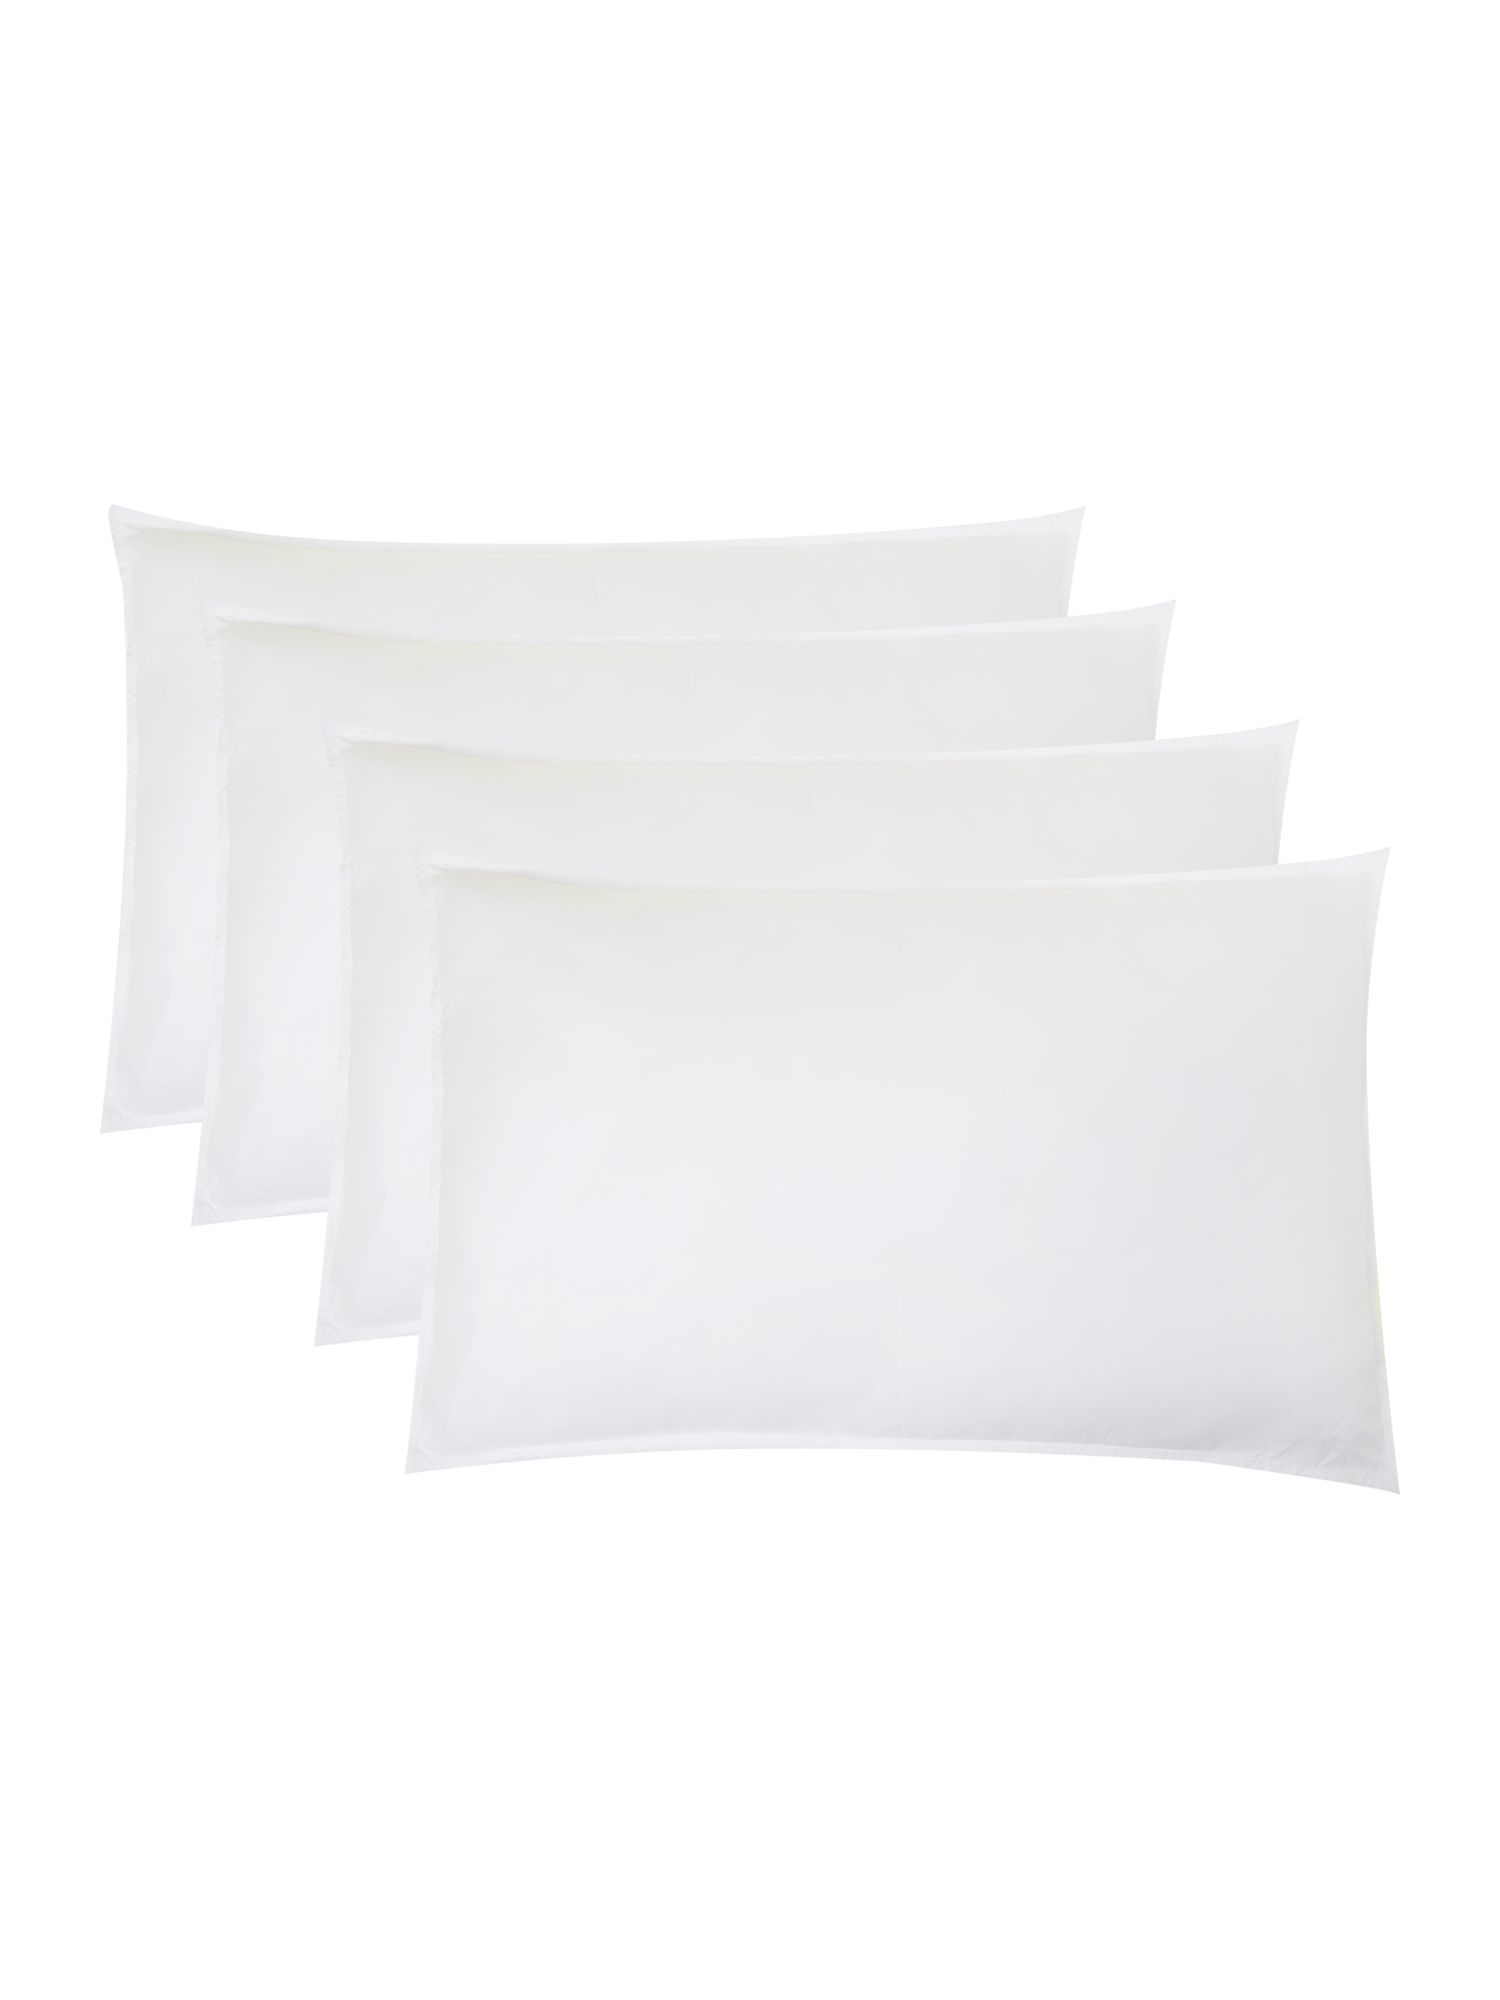 Washable anti allergy pack of four medium pillows